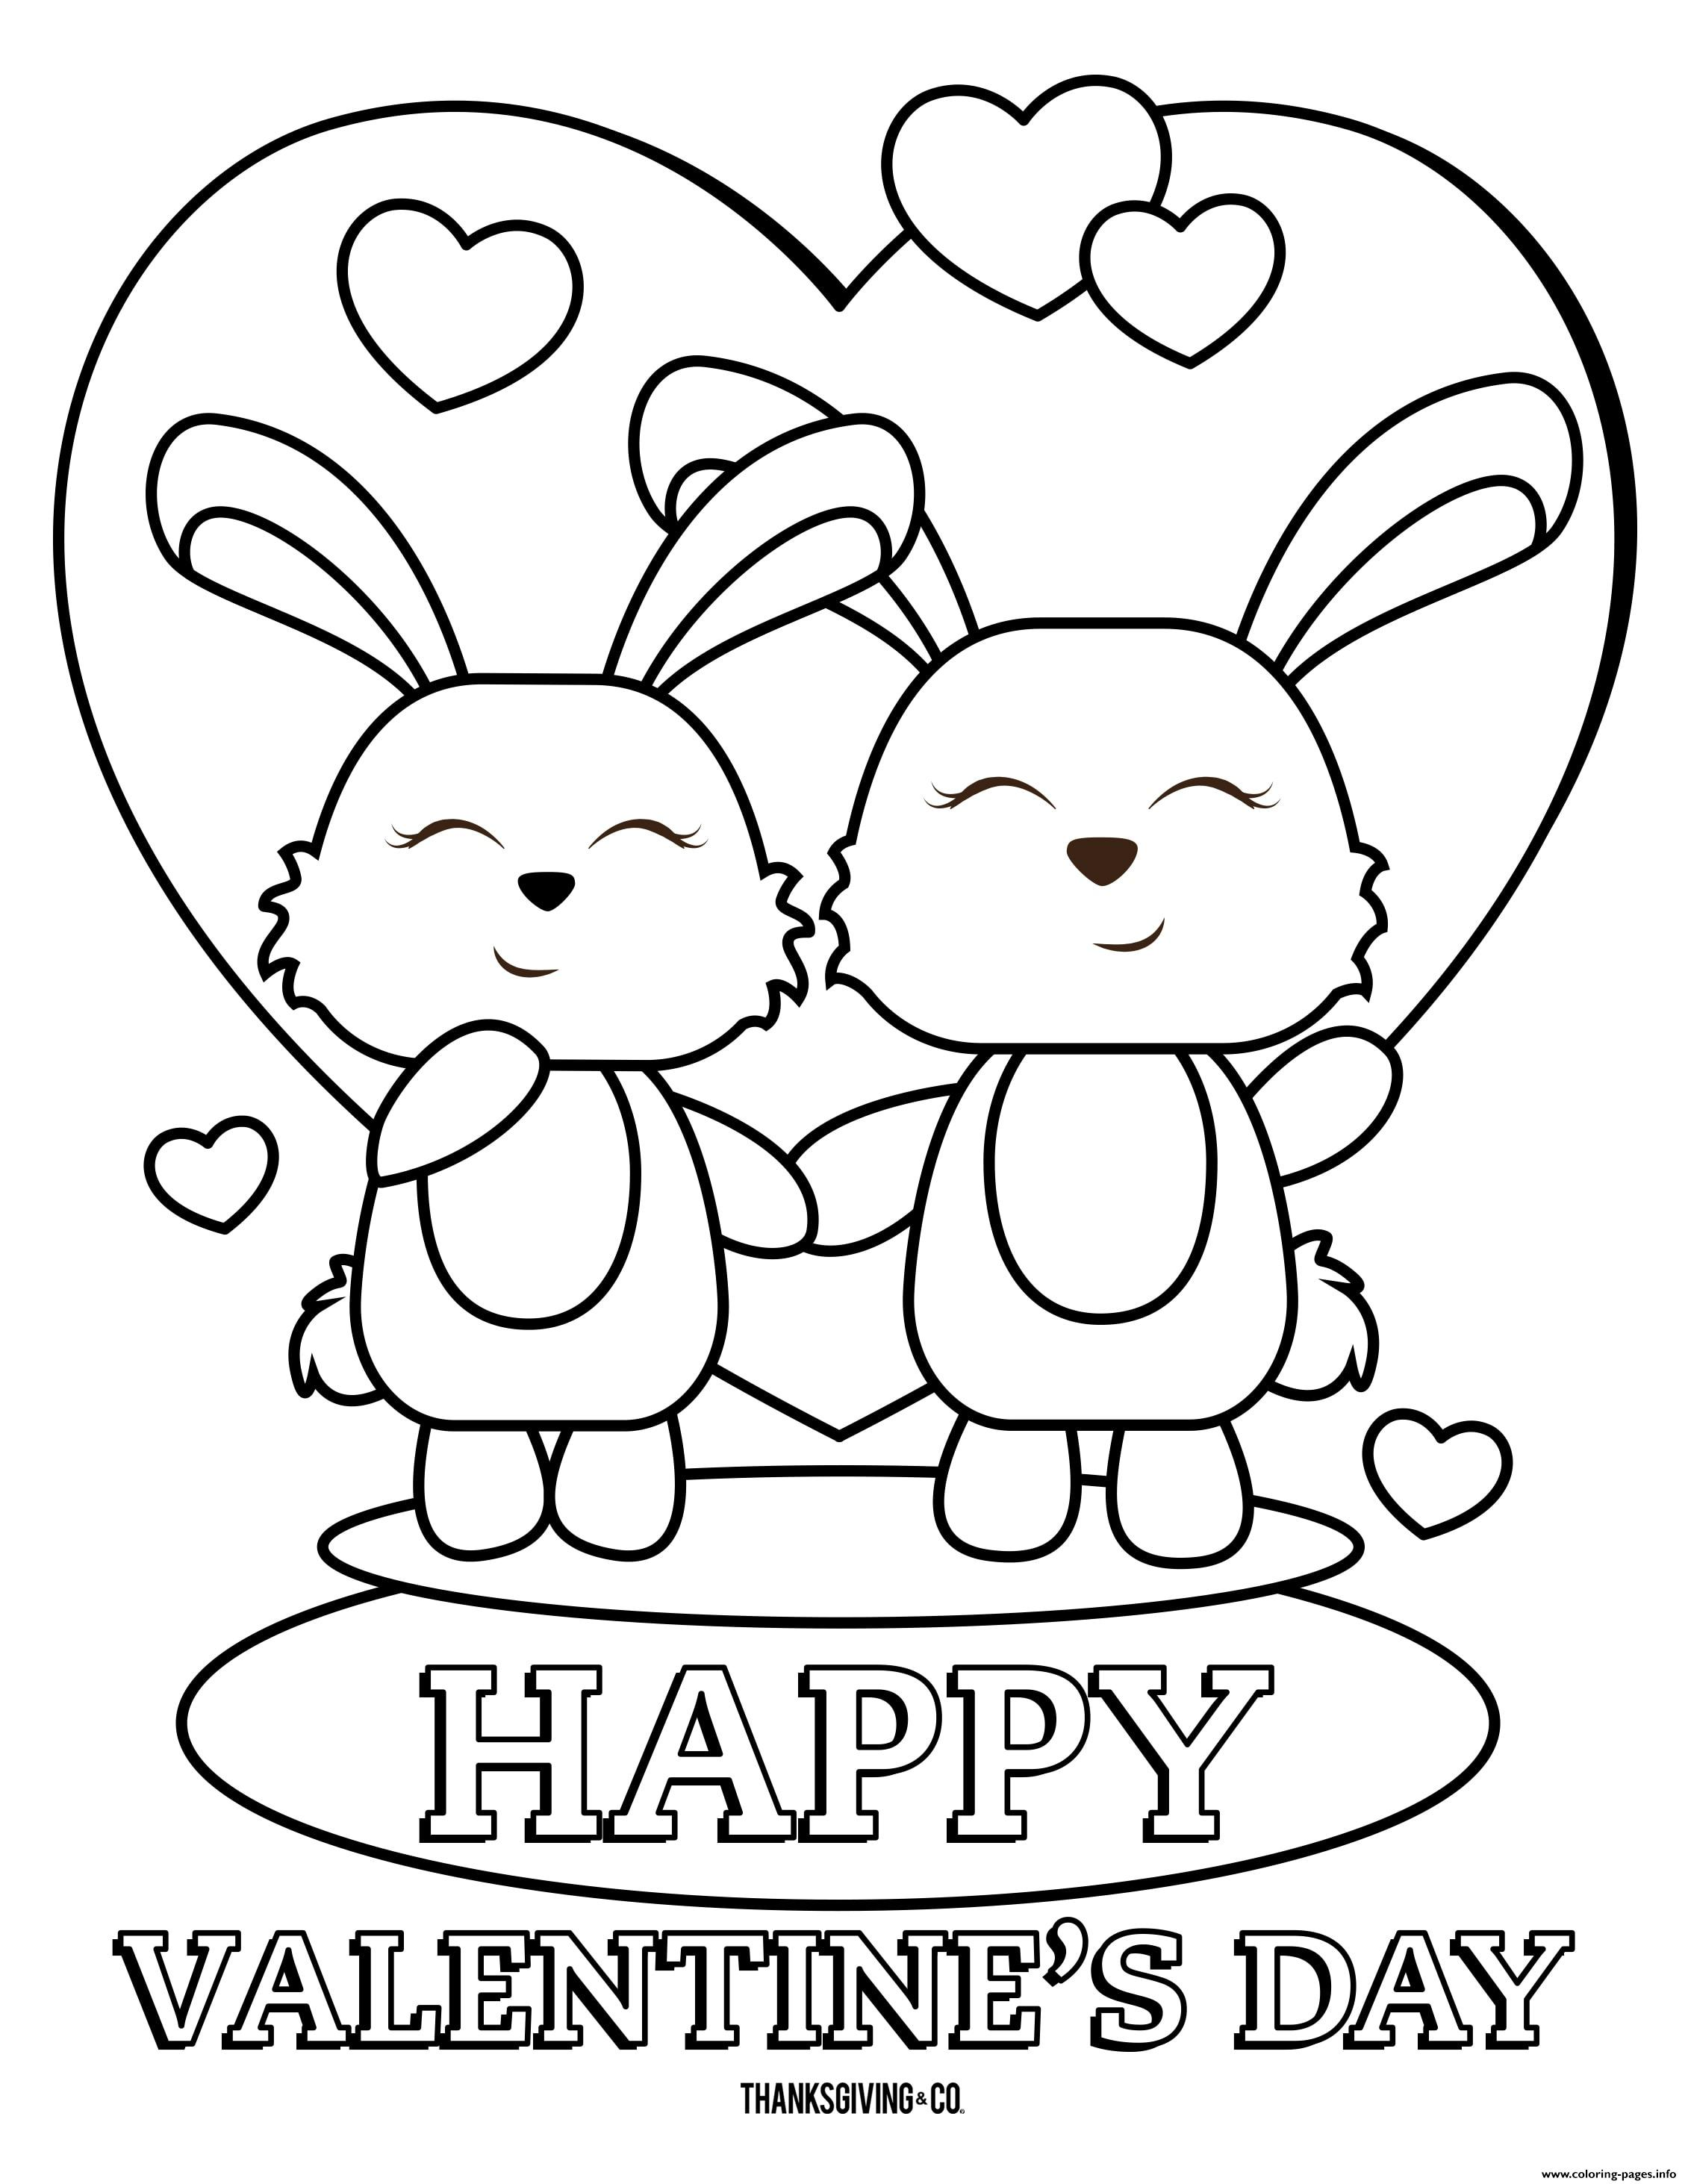 Happy Valentines Day Bunnies Coloring Pages Printable